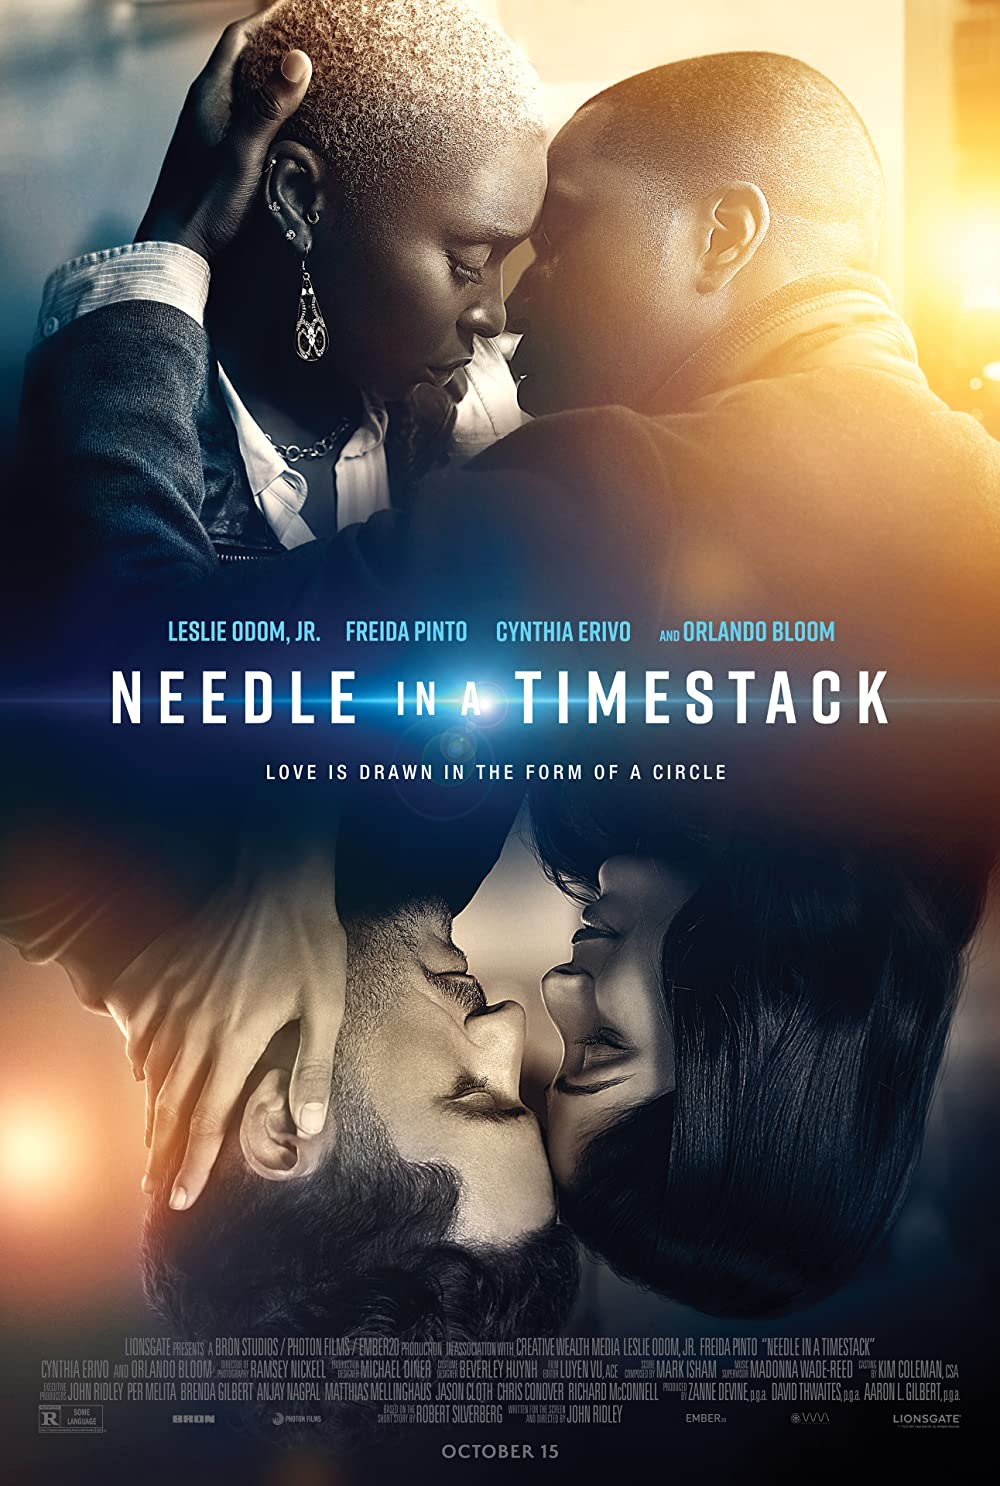 Needle in a Timestack 2021 English 1080p HDRip 1.41GB Download